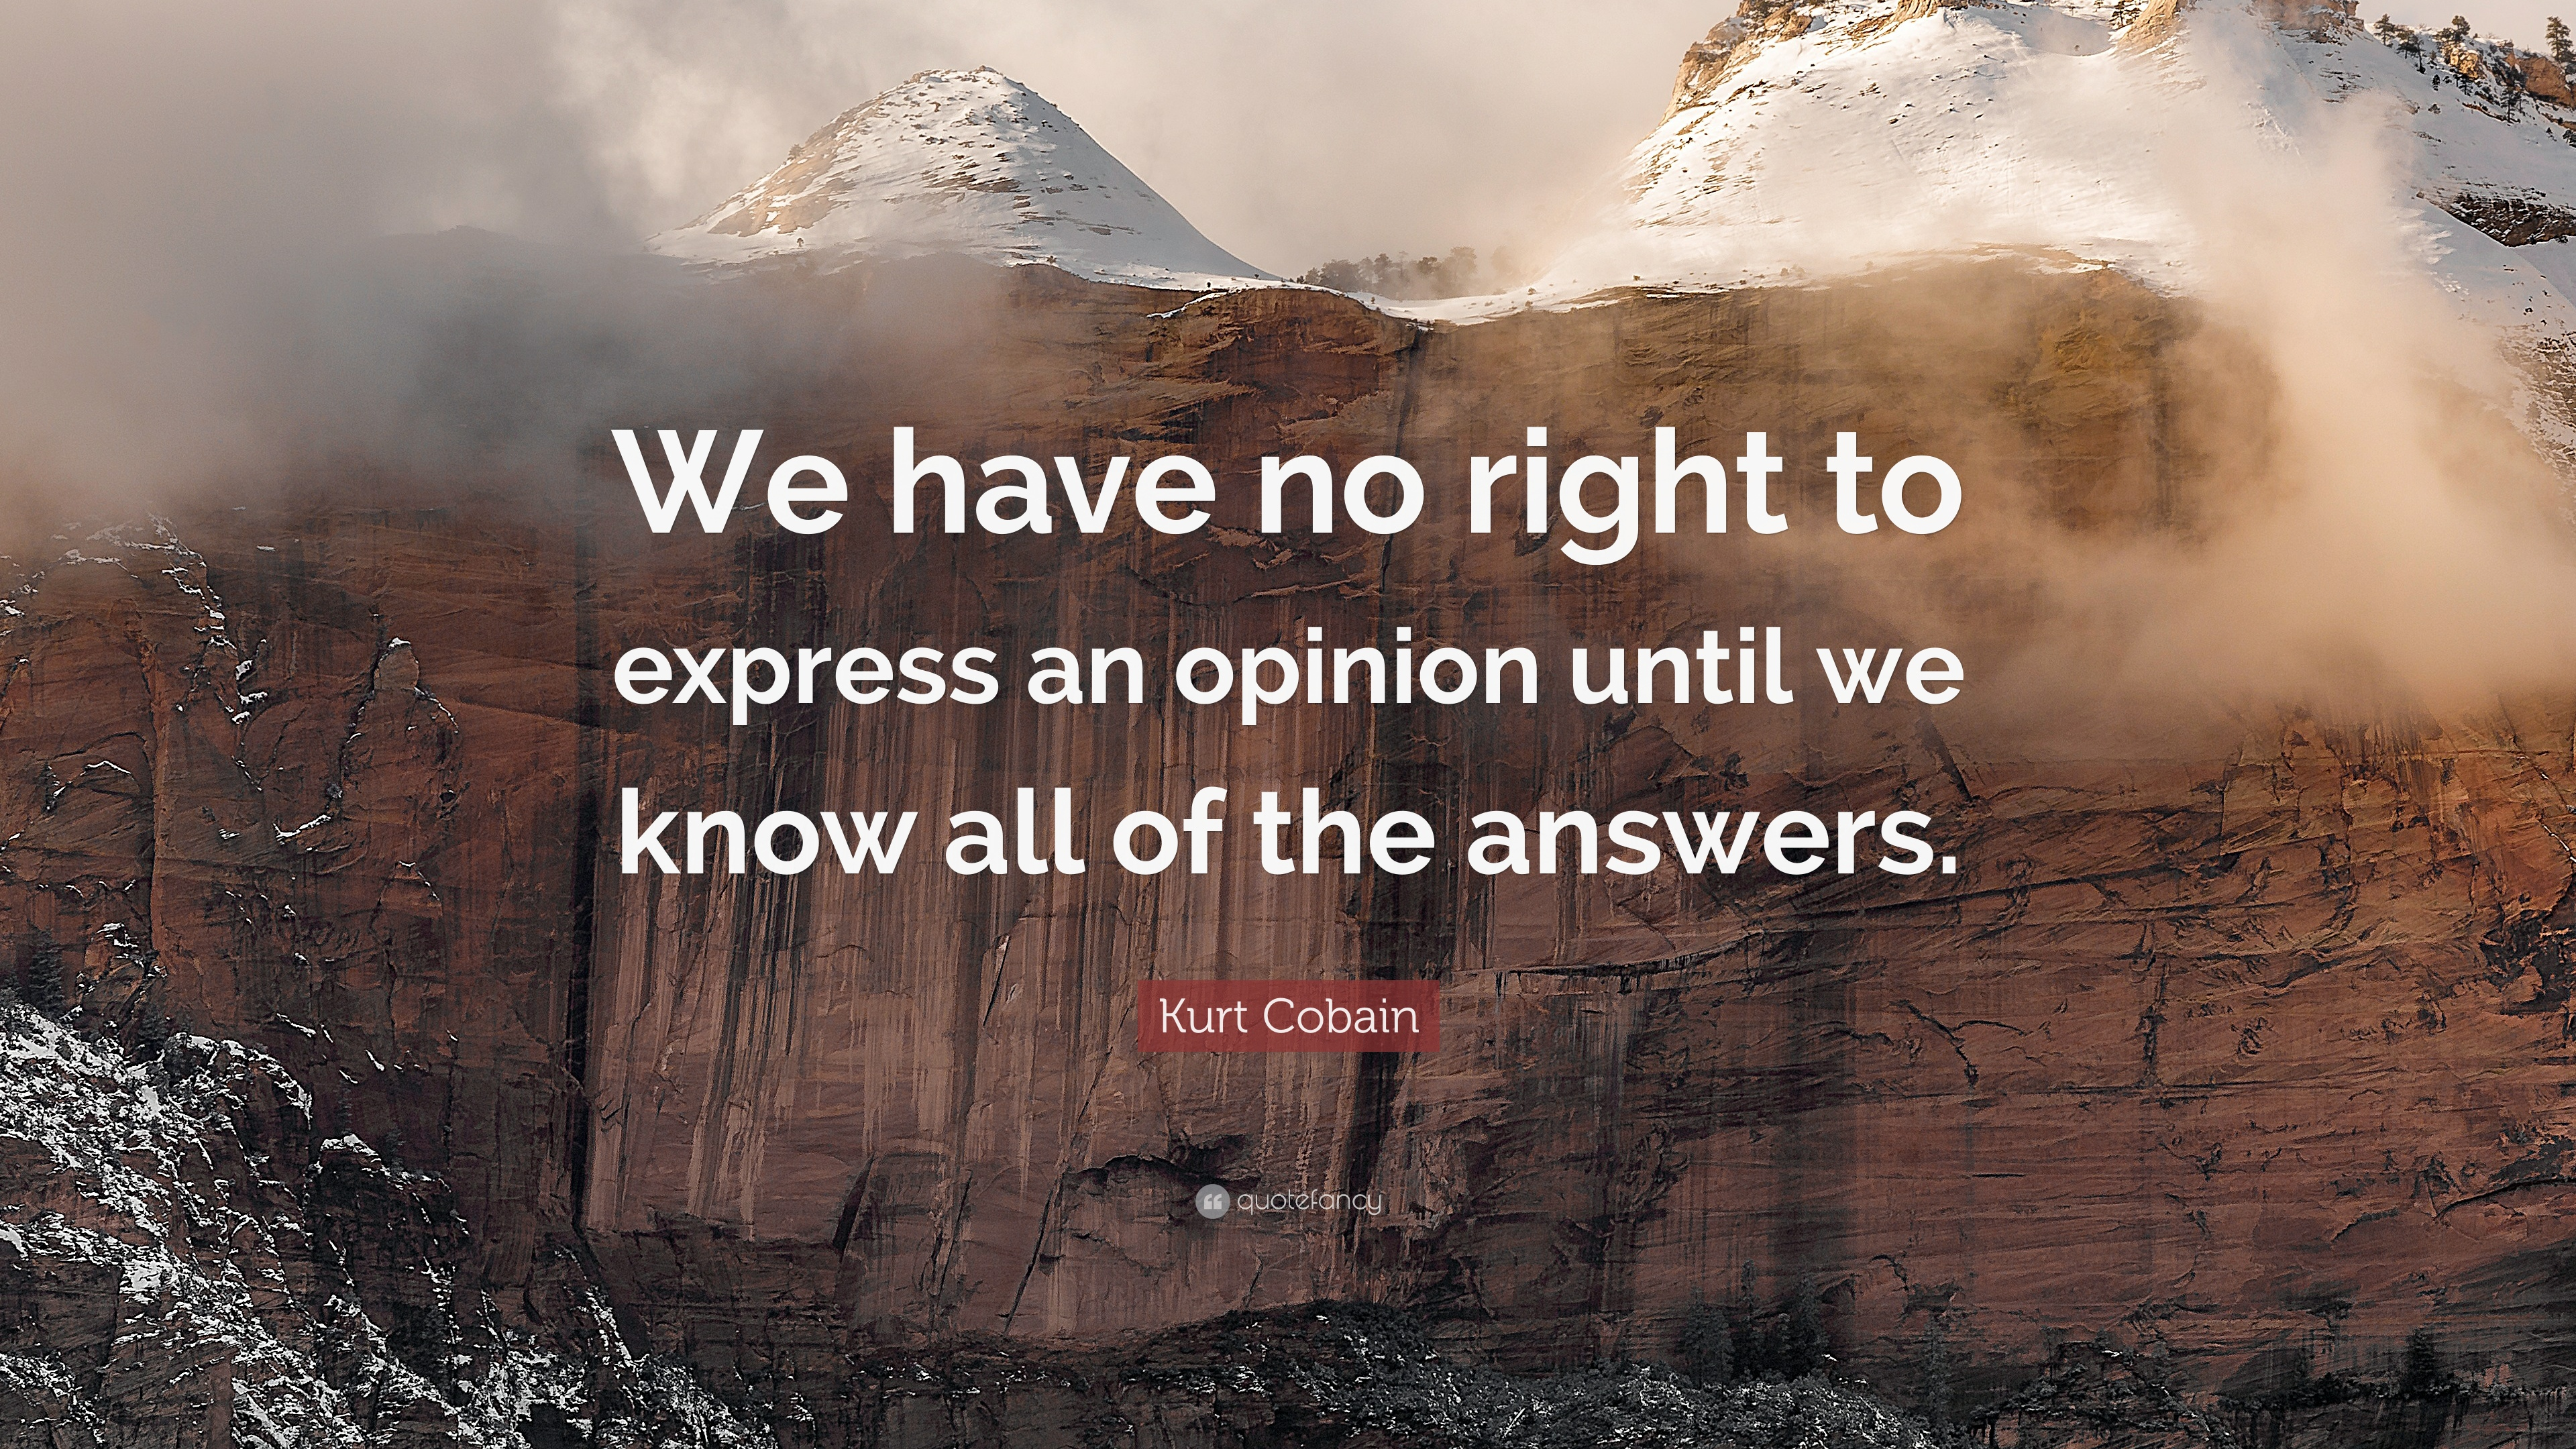 Kurt Cobain Quote We Have No Right To Express An Opinion Until We